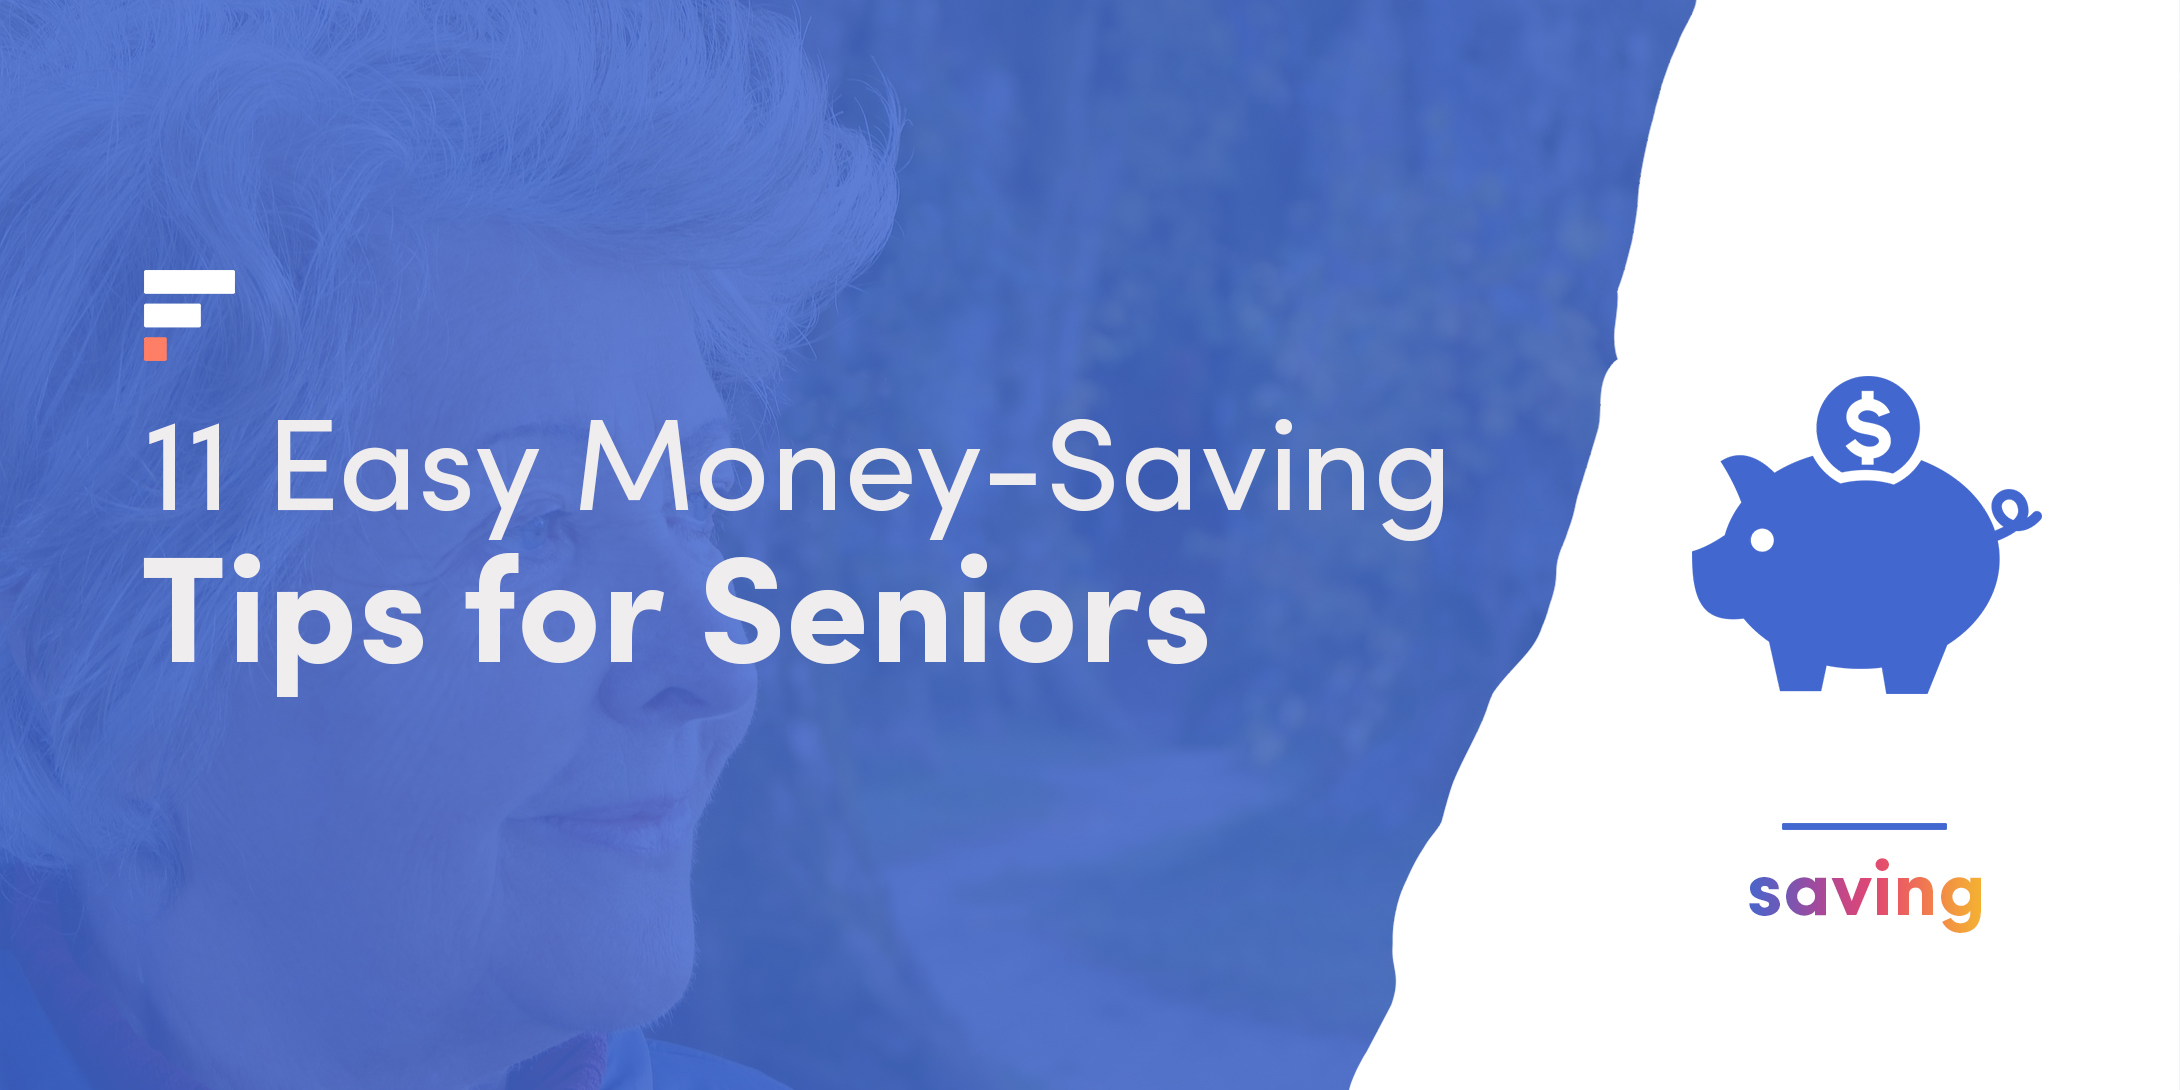 11 Easy Money-Saving Tips for Seniors